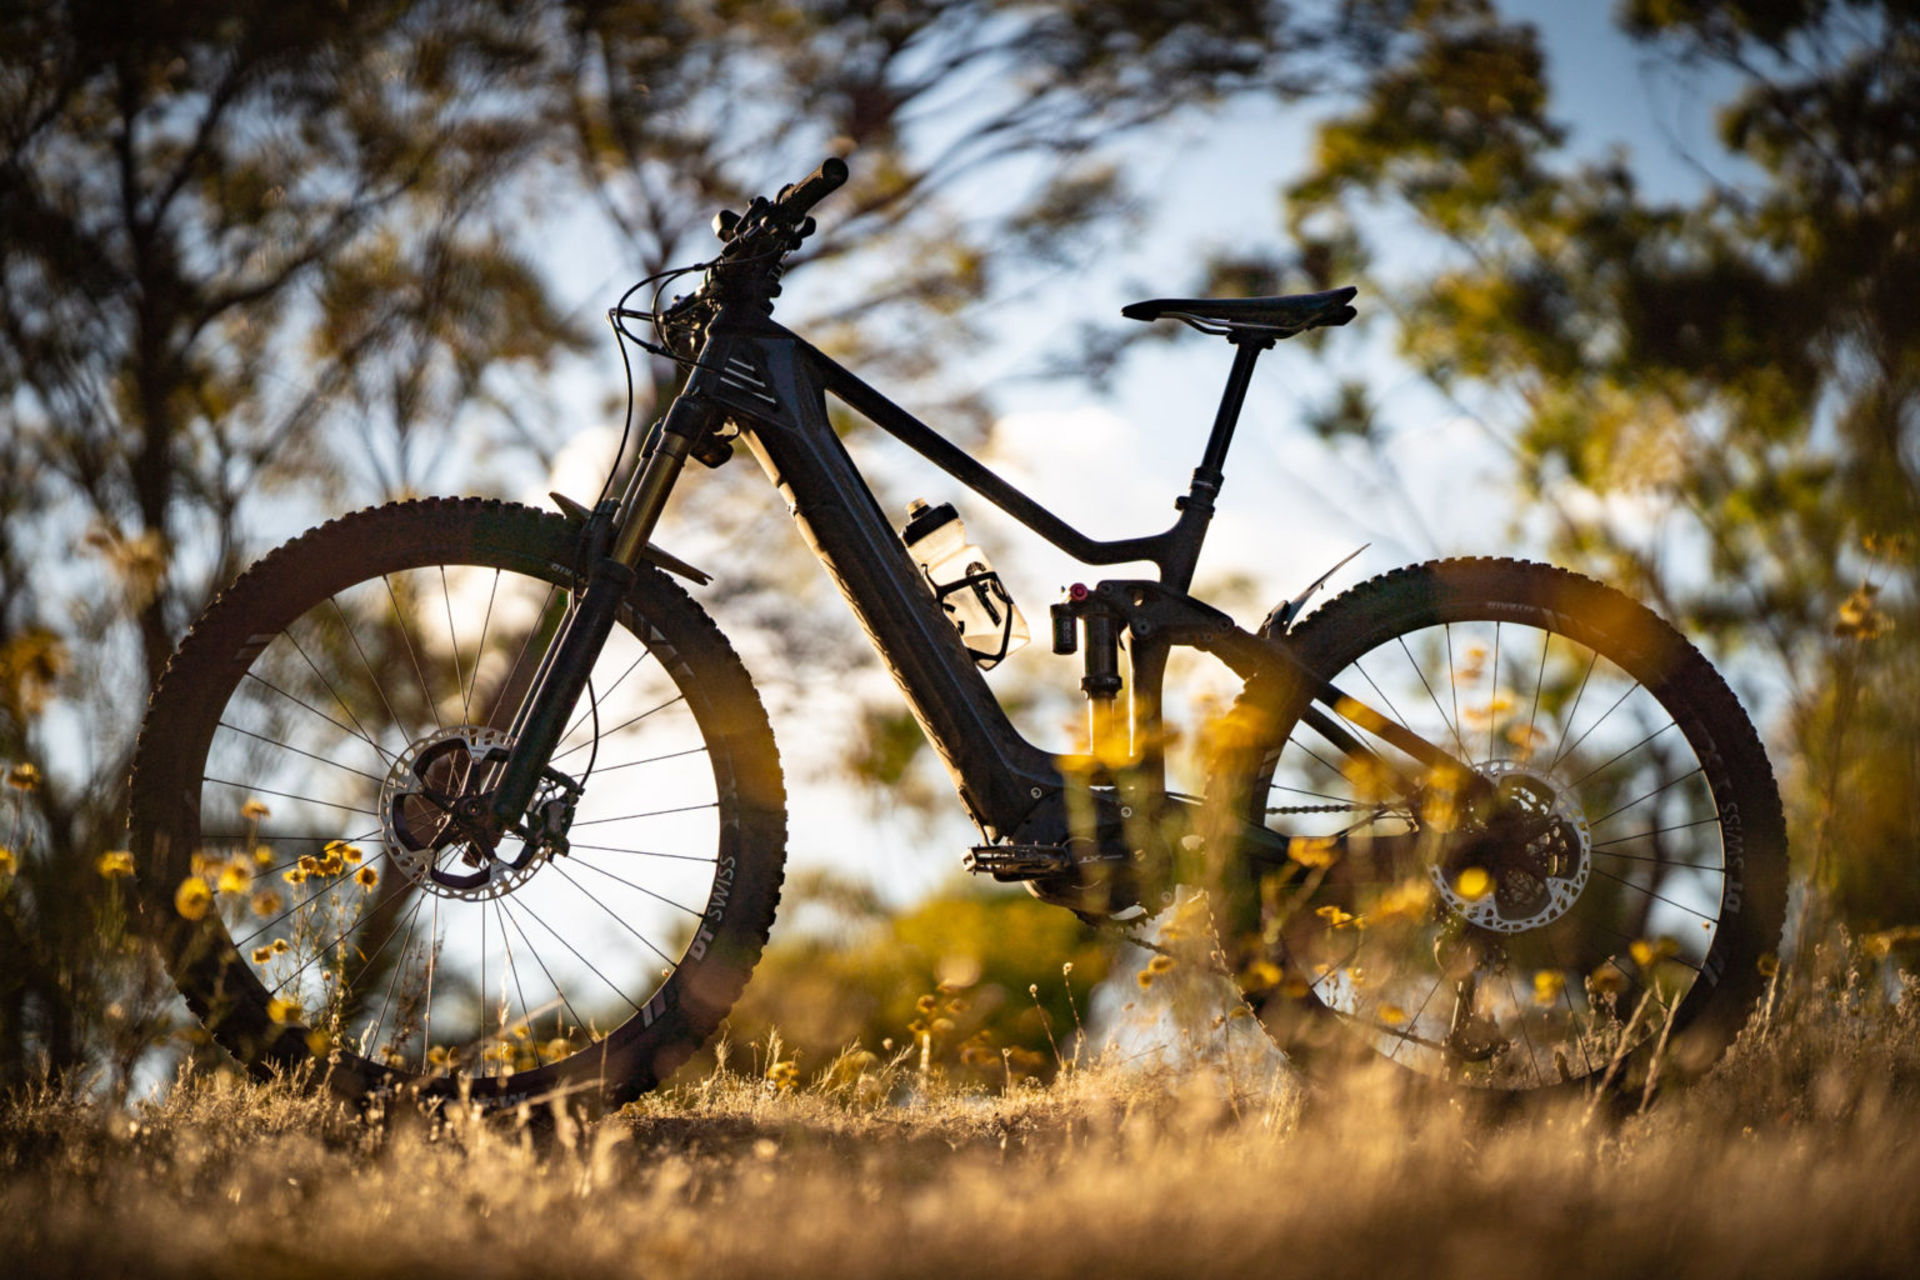 eone sixty, flow mtb, merida ebike, carbon, emtb, 2020 merida, suspension, shimano e8000, aussie, review, long term review, mtb, wil reviews